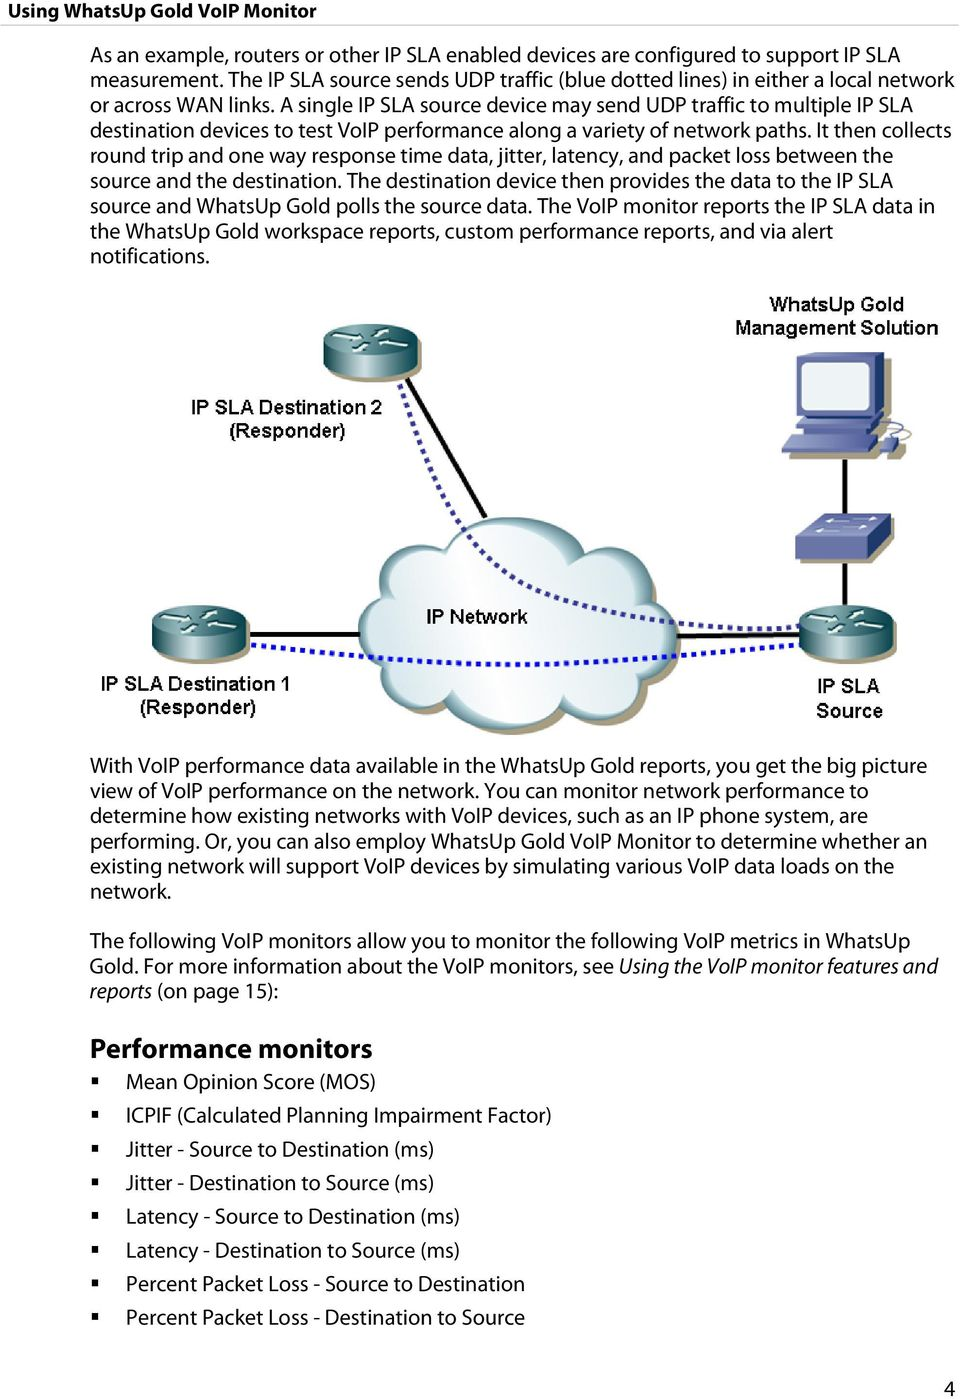 A single IP SLA source device may send UDP traffic to multiple IP SLA destination devices to test VoIP performance along a variety of network paths.